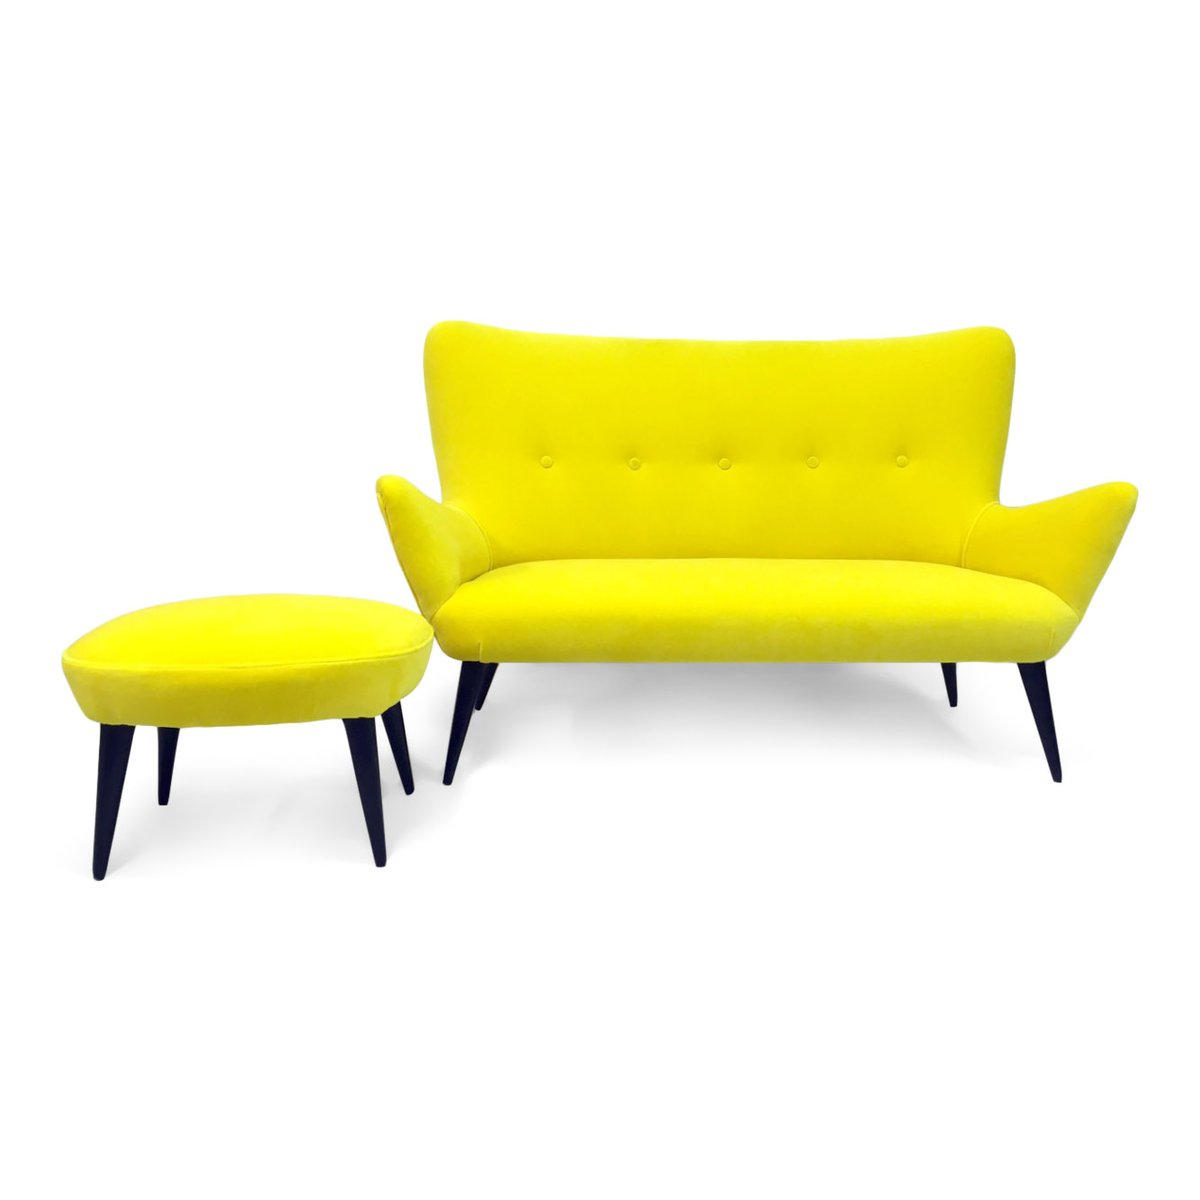 Italian Sofa and Stool in Yellow Velvet, 1950s, Set of 2 for sale at ...